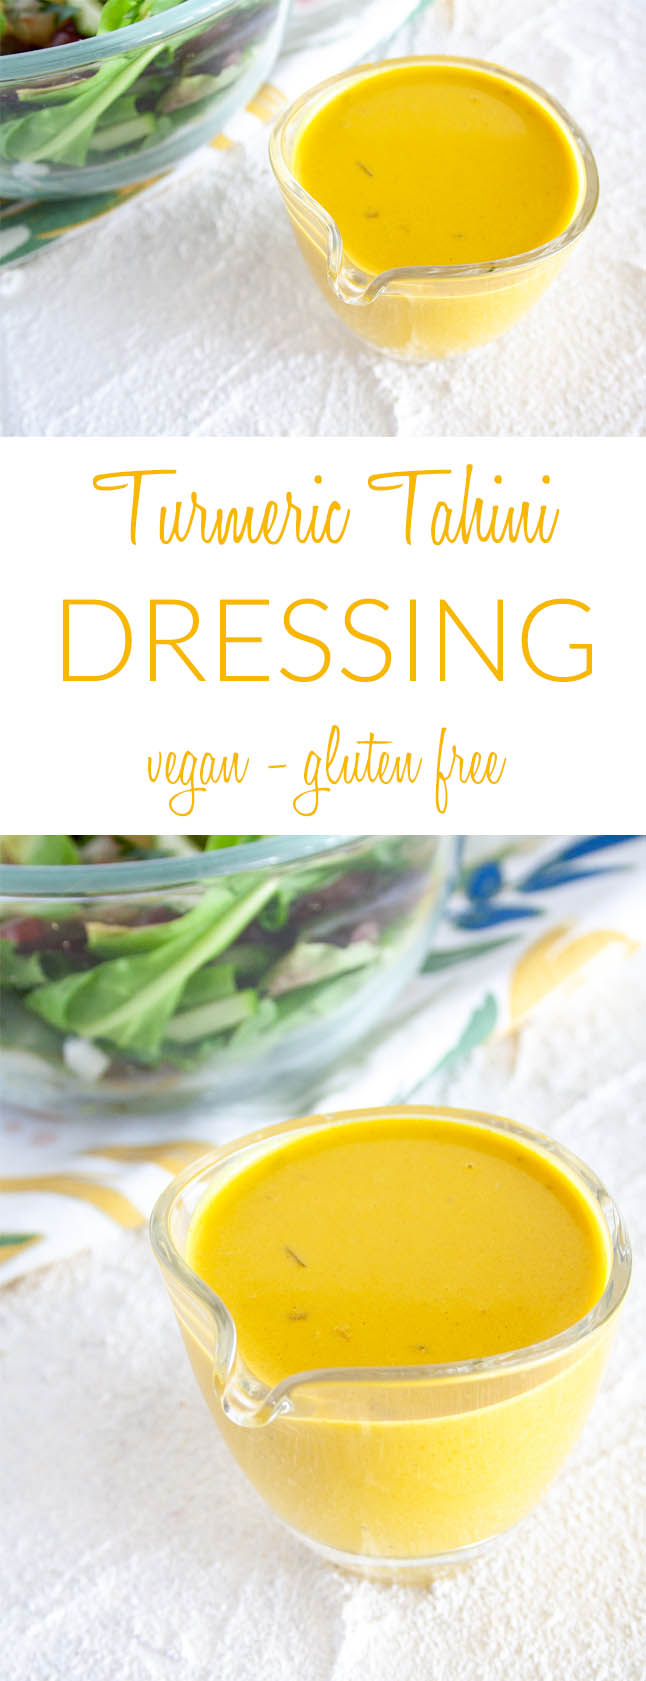 Turmeric Tahini Dressing collage photo with text.